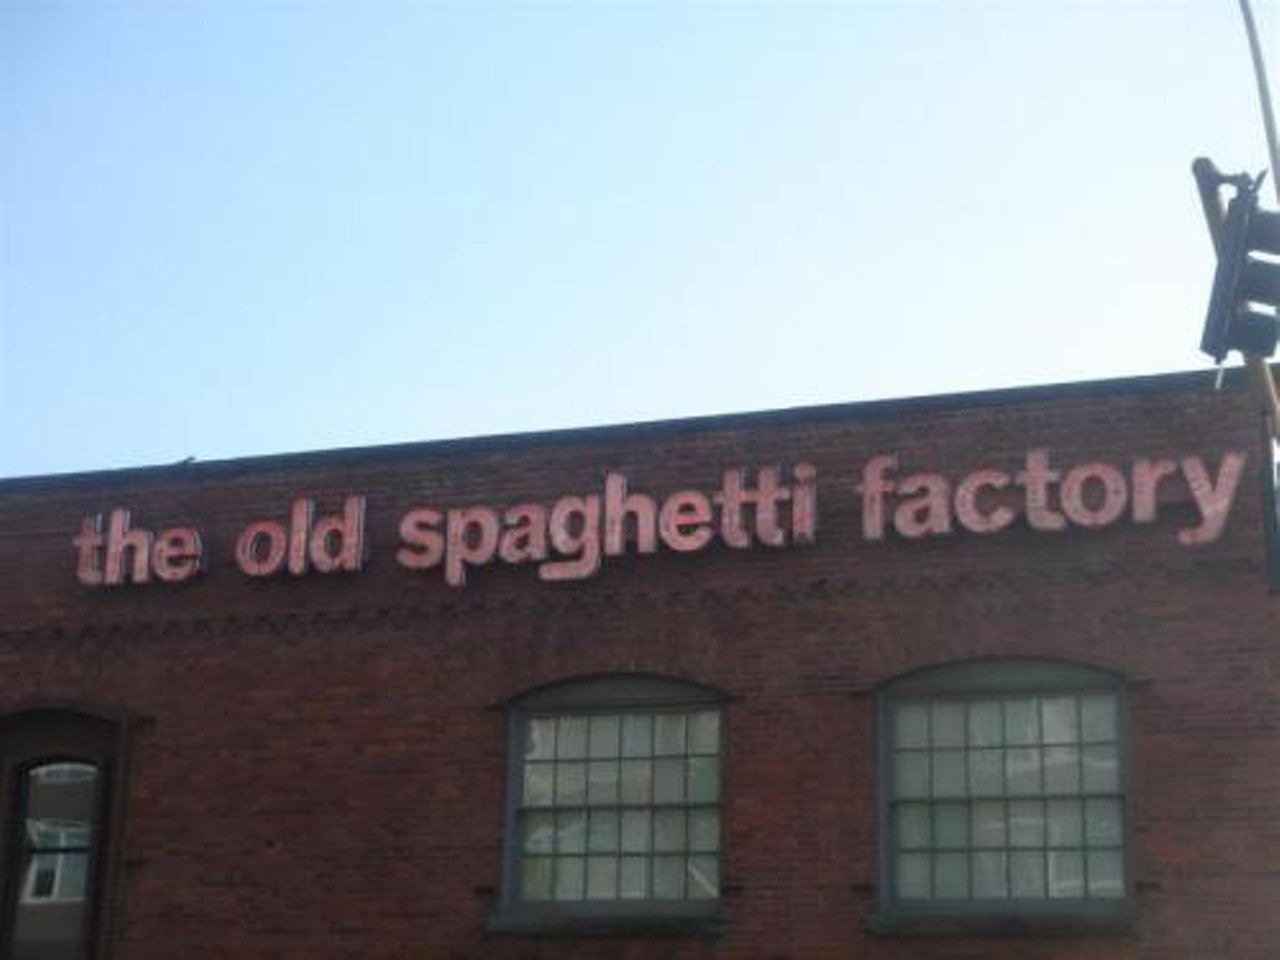 Order delivery online from Old Spaghetti Factory in St Louis instantly! View Old Spaghetti Factory's December deals, coupons & menus. Order delivery online right now or by phone from GrubHubCuisine: Dinner, Lunch, Pasta.